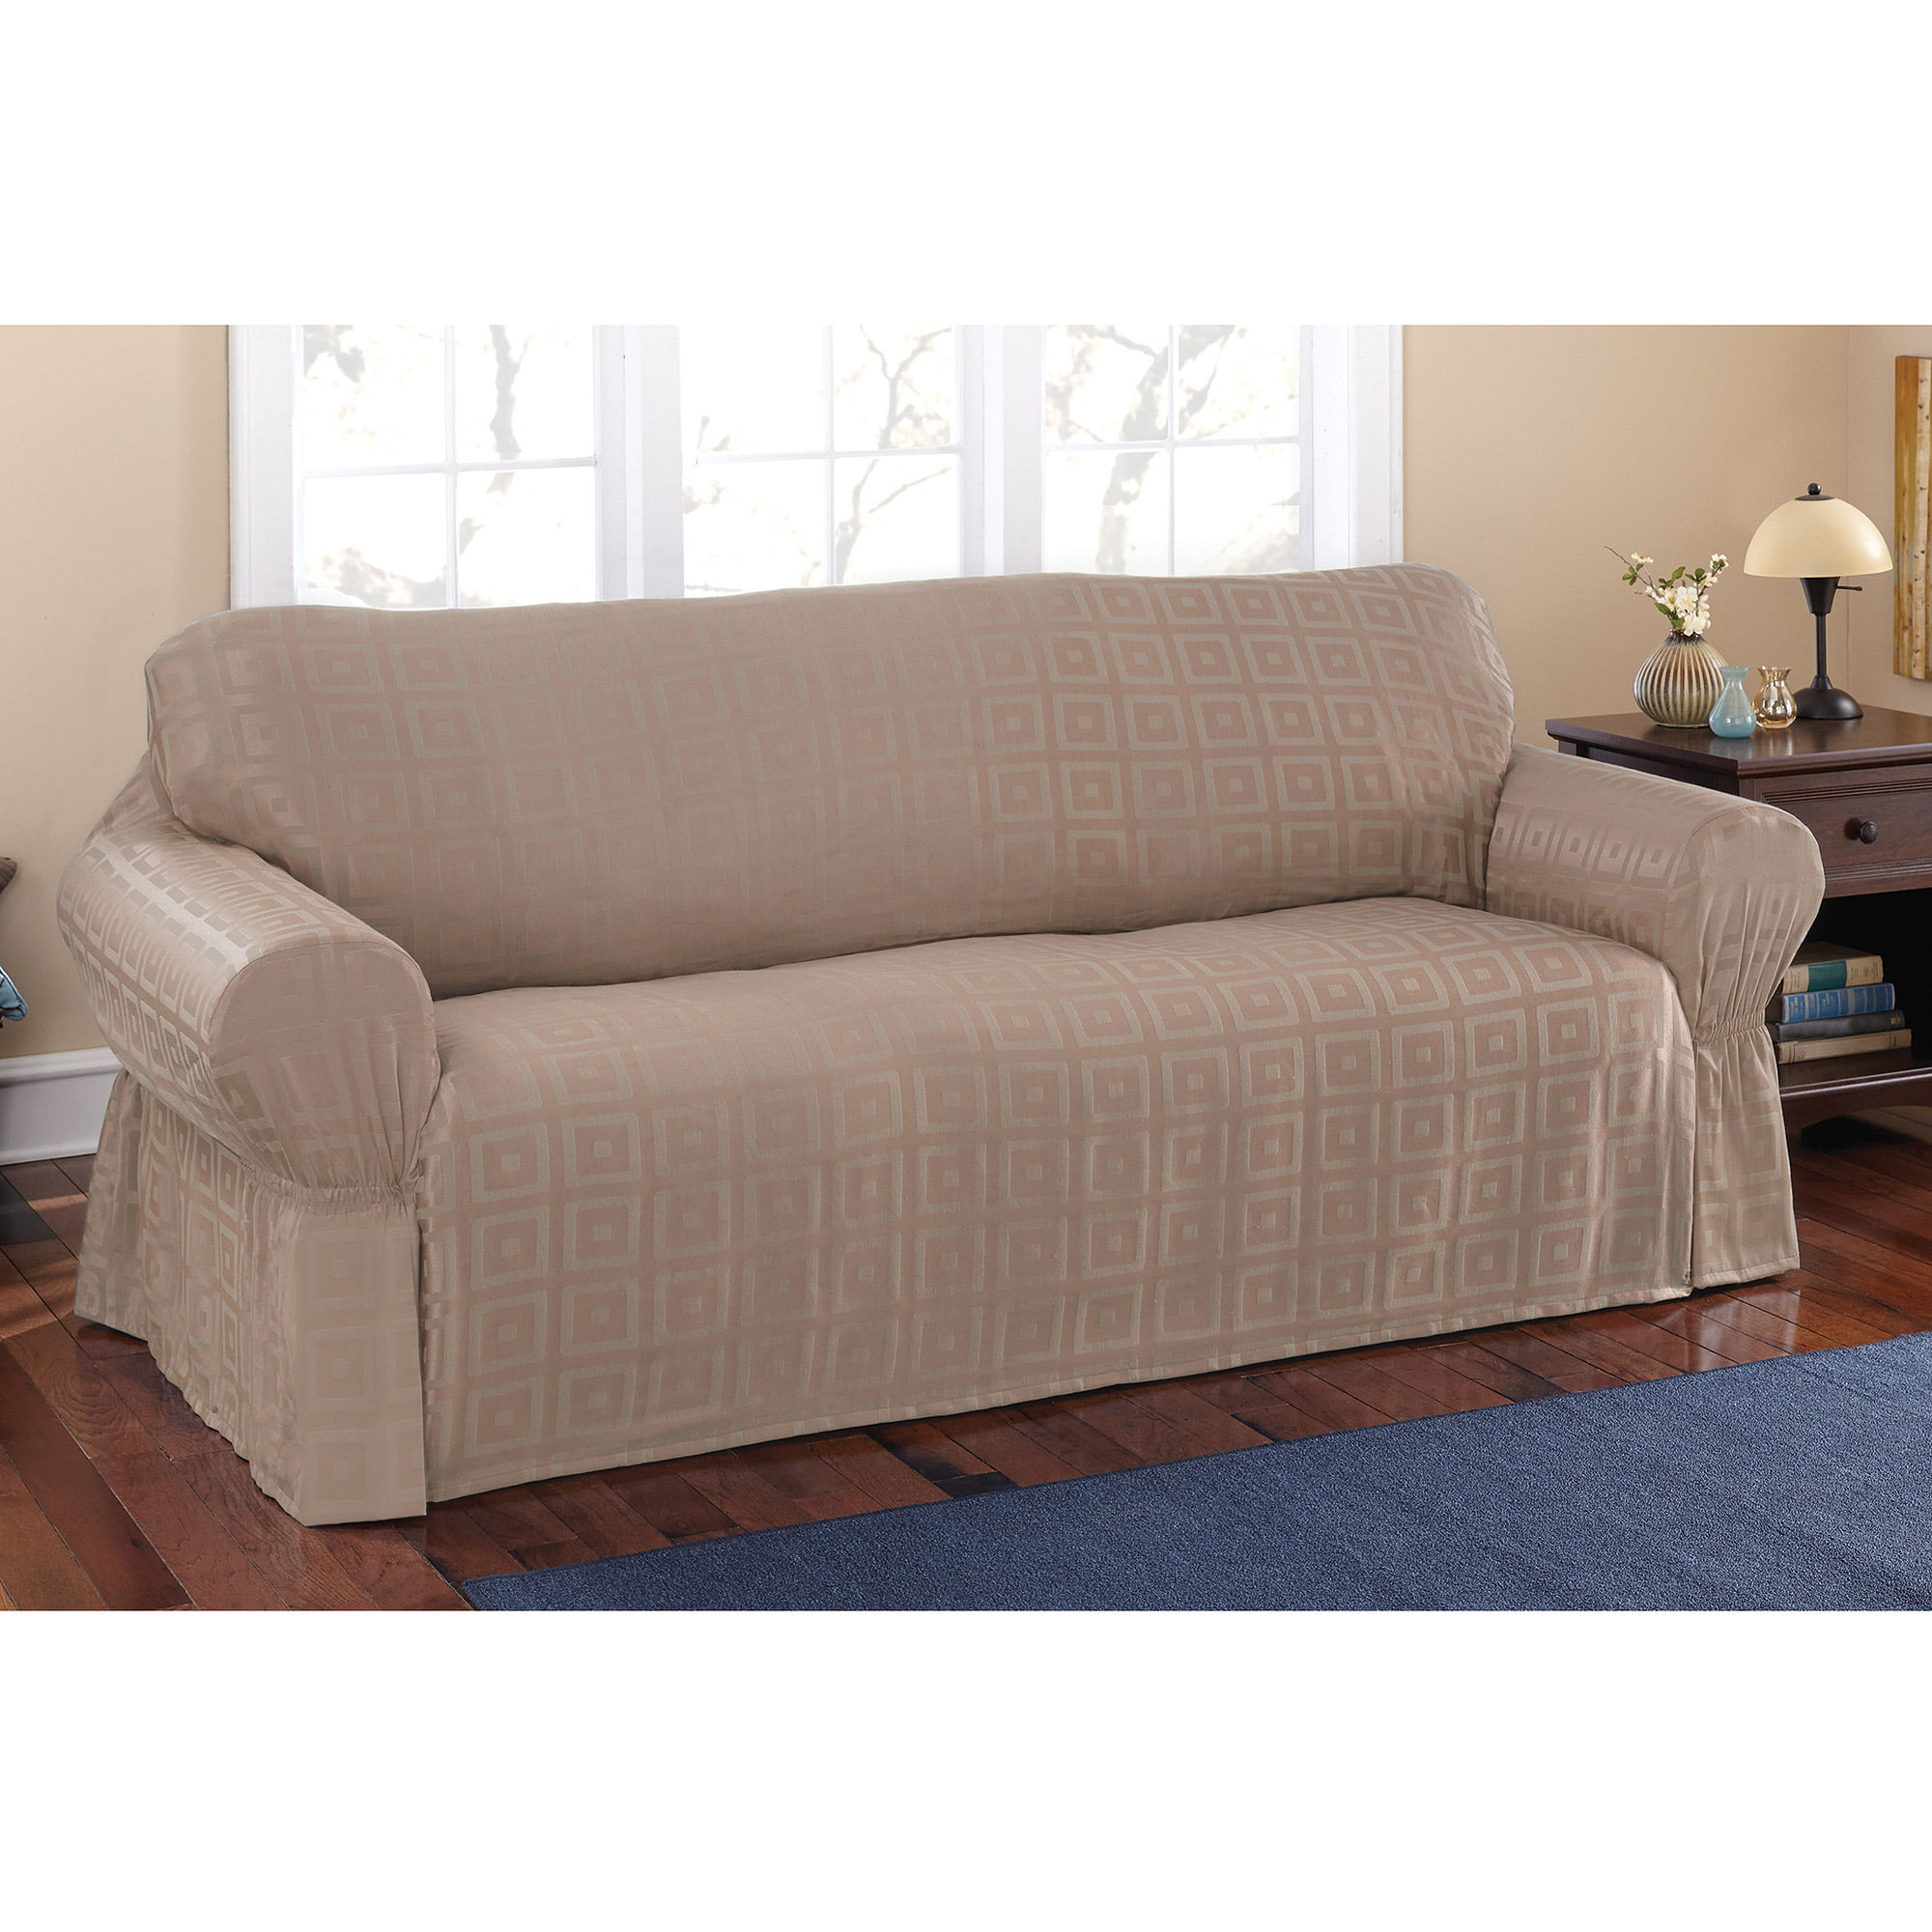 mainstays sherwood slipcover sofa walmart com rh walmart com Walmart Loveseat Slipcovers Sofa Chair Covers Walmart